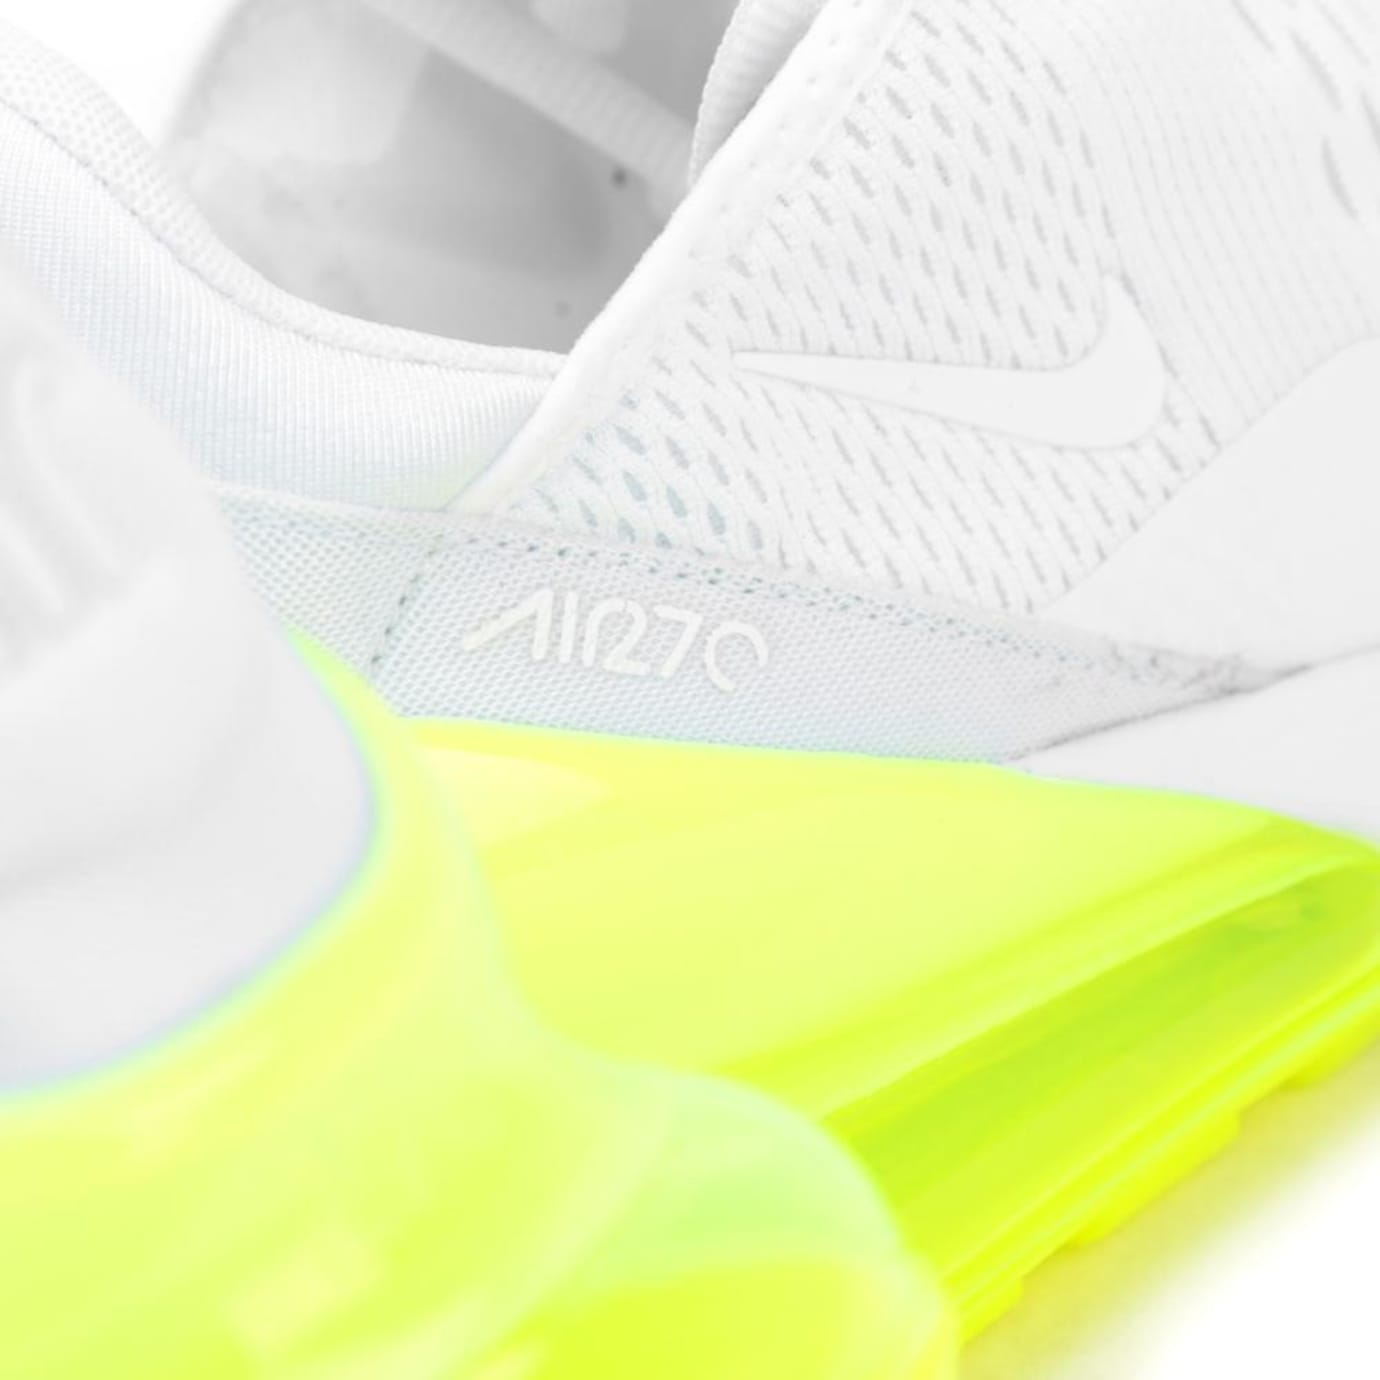 Nike Air Max 270 'White'Volt'